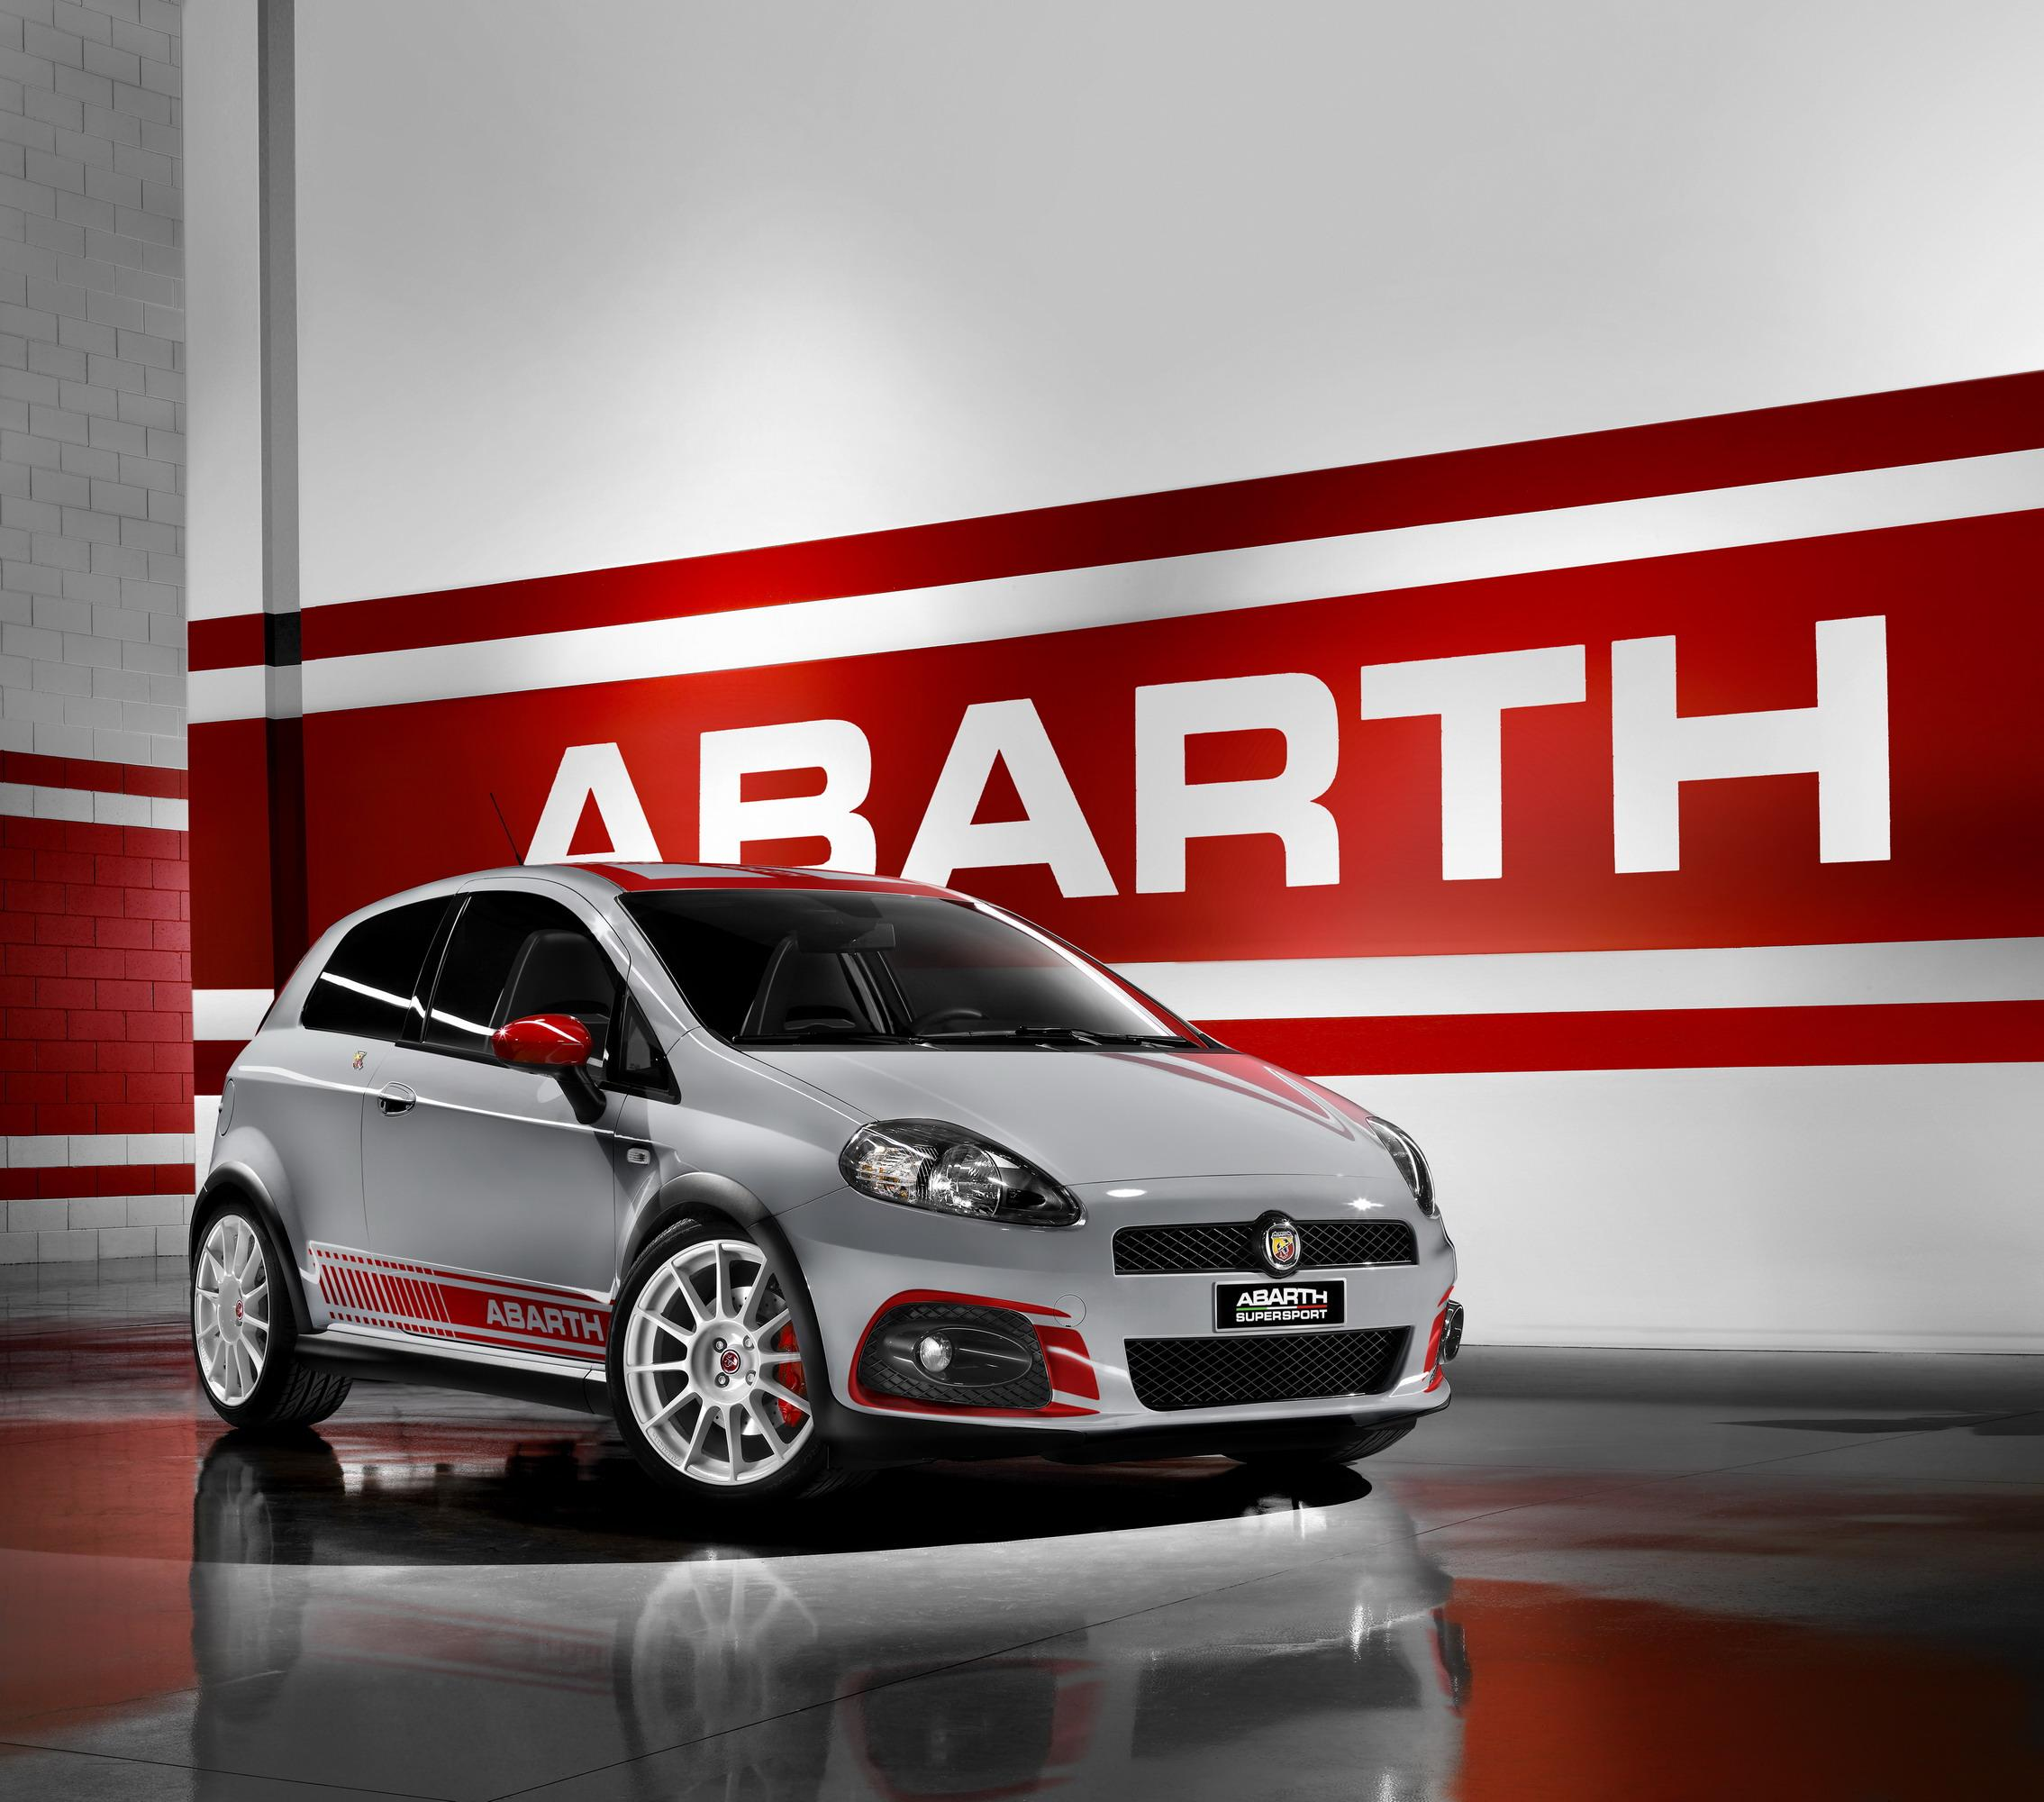 2009 Fiat Grande Punto Abarth SuperSport